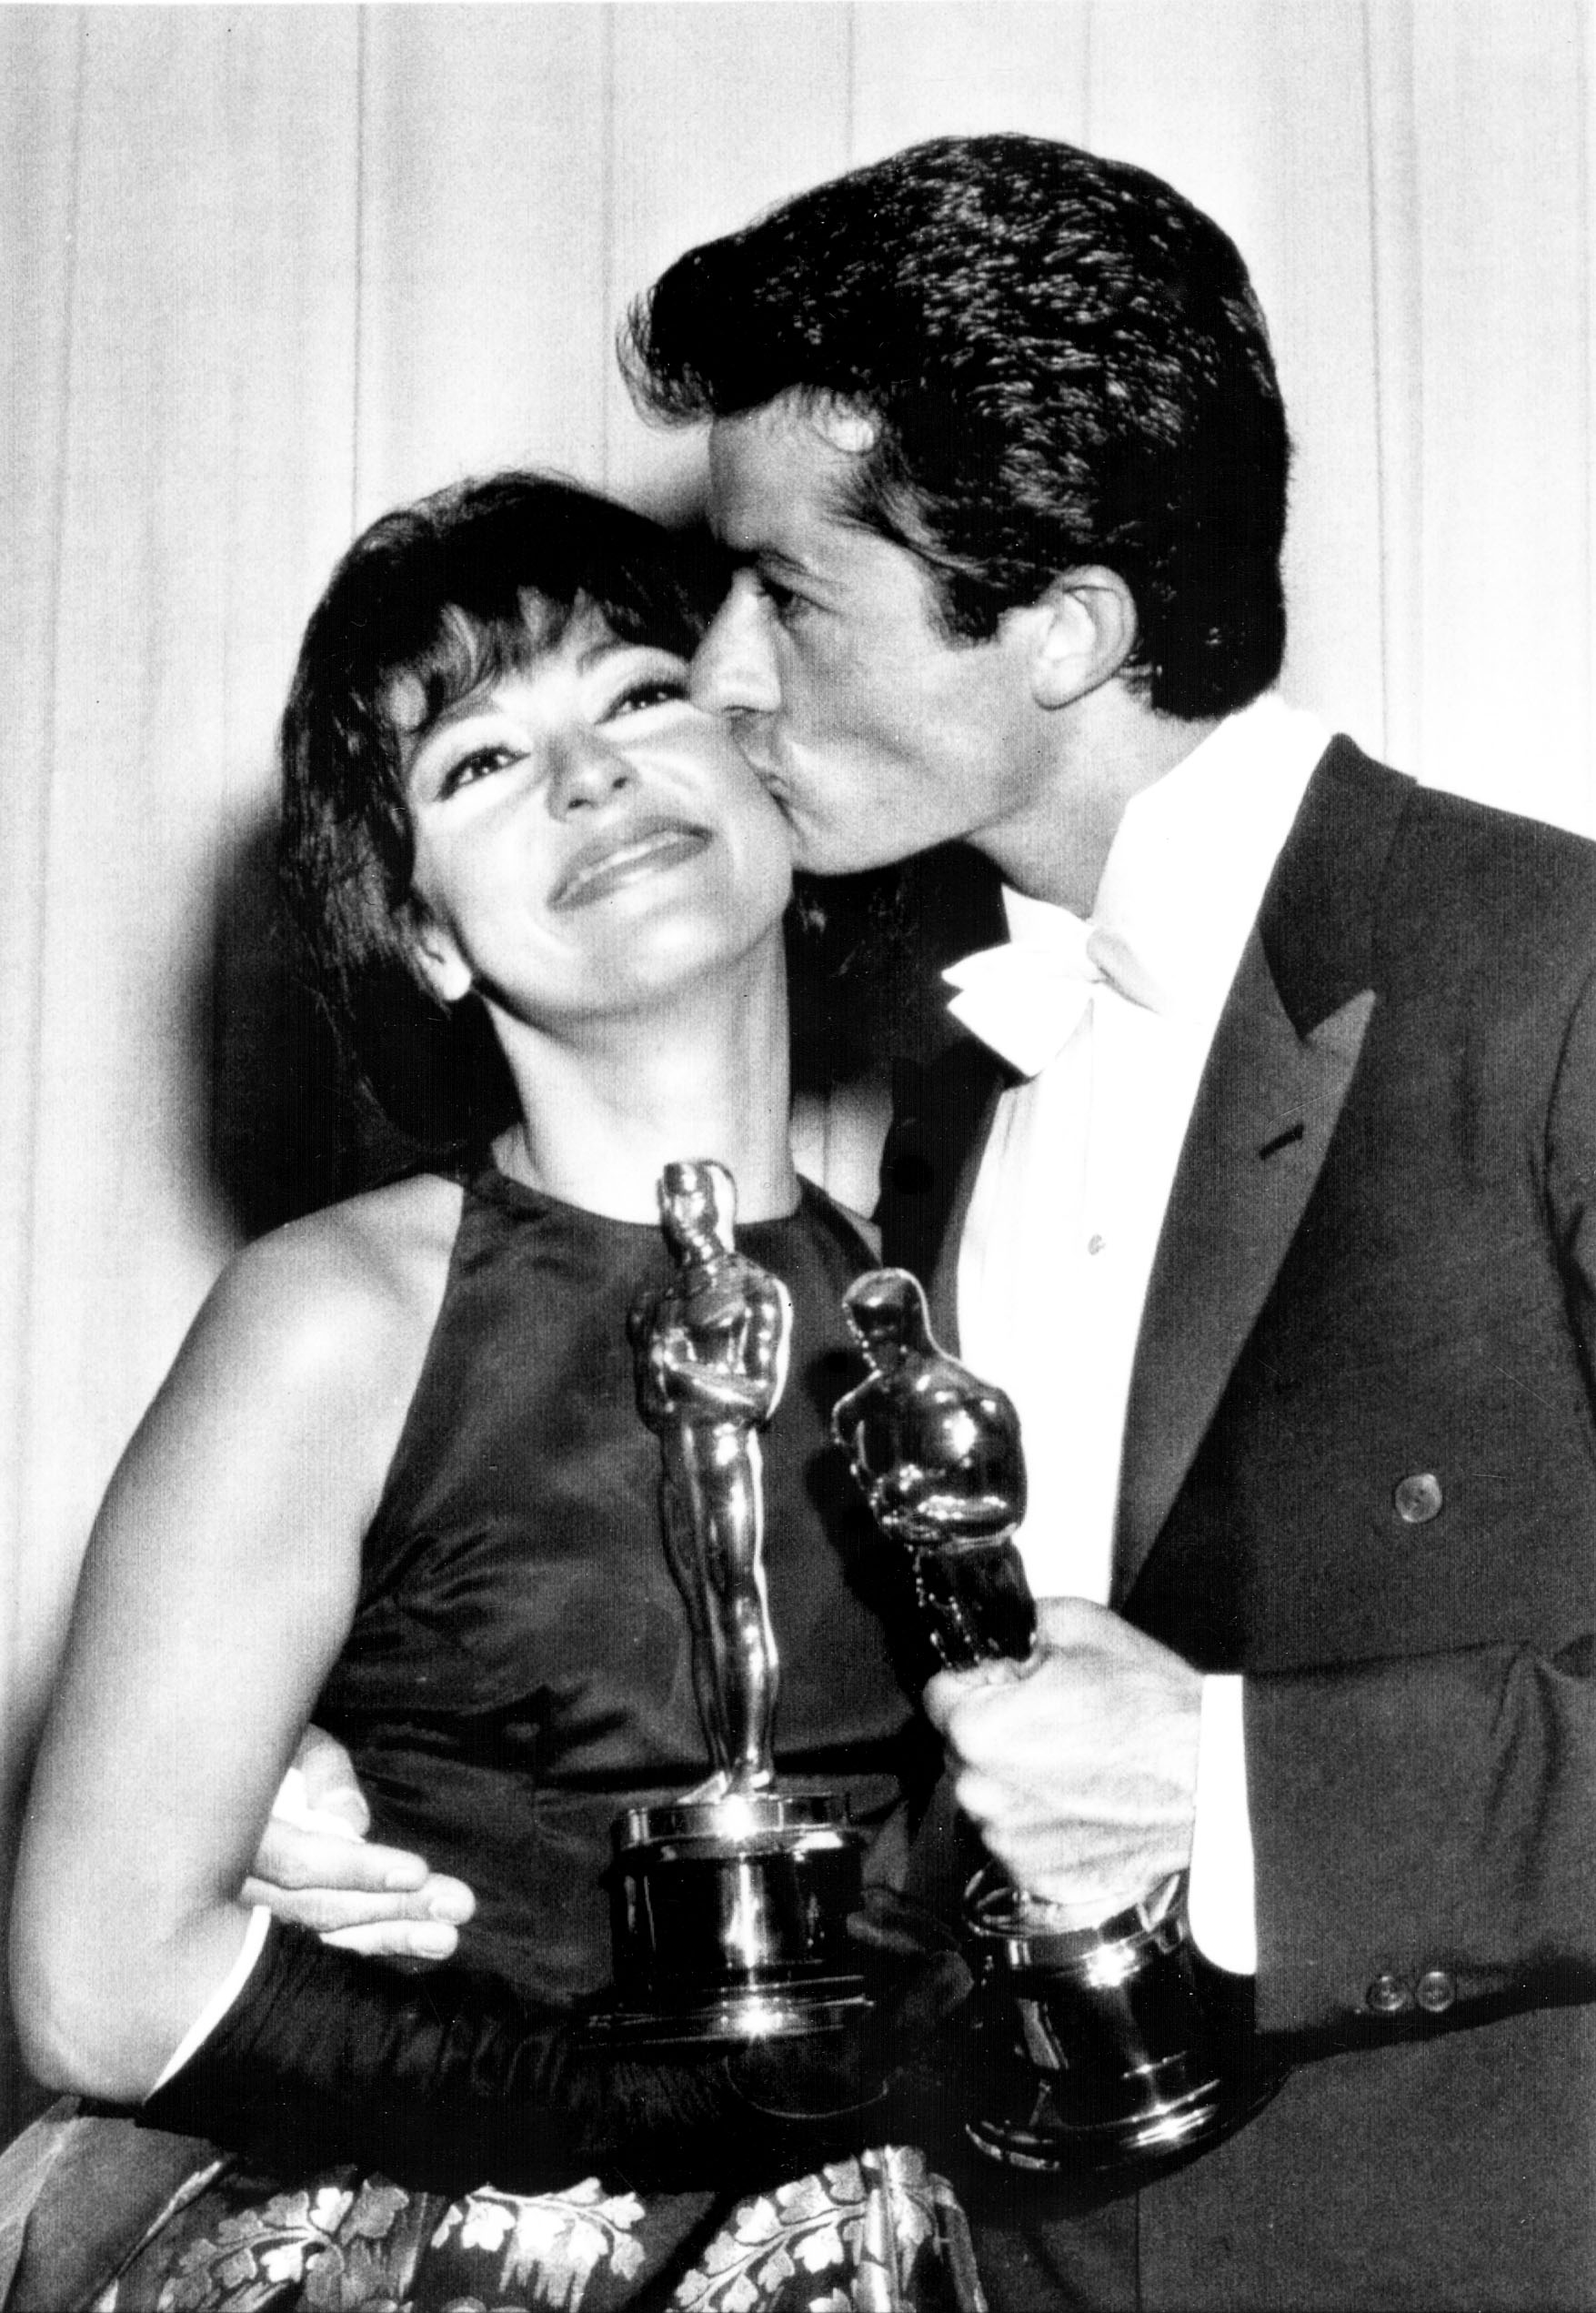 WEST SIDE STORY Oscar winners Rita Moreno, left, and George Chakiris